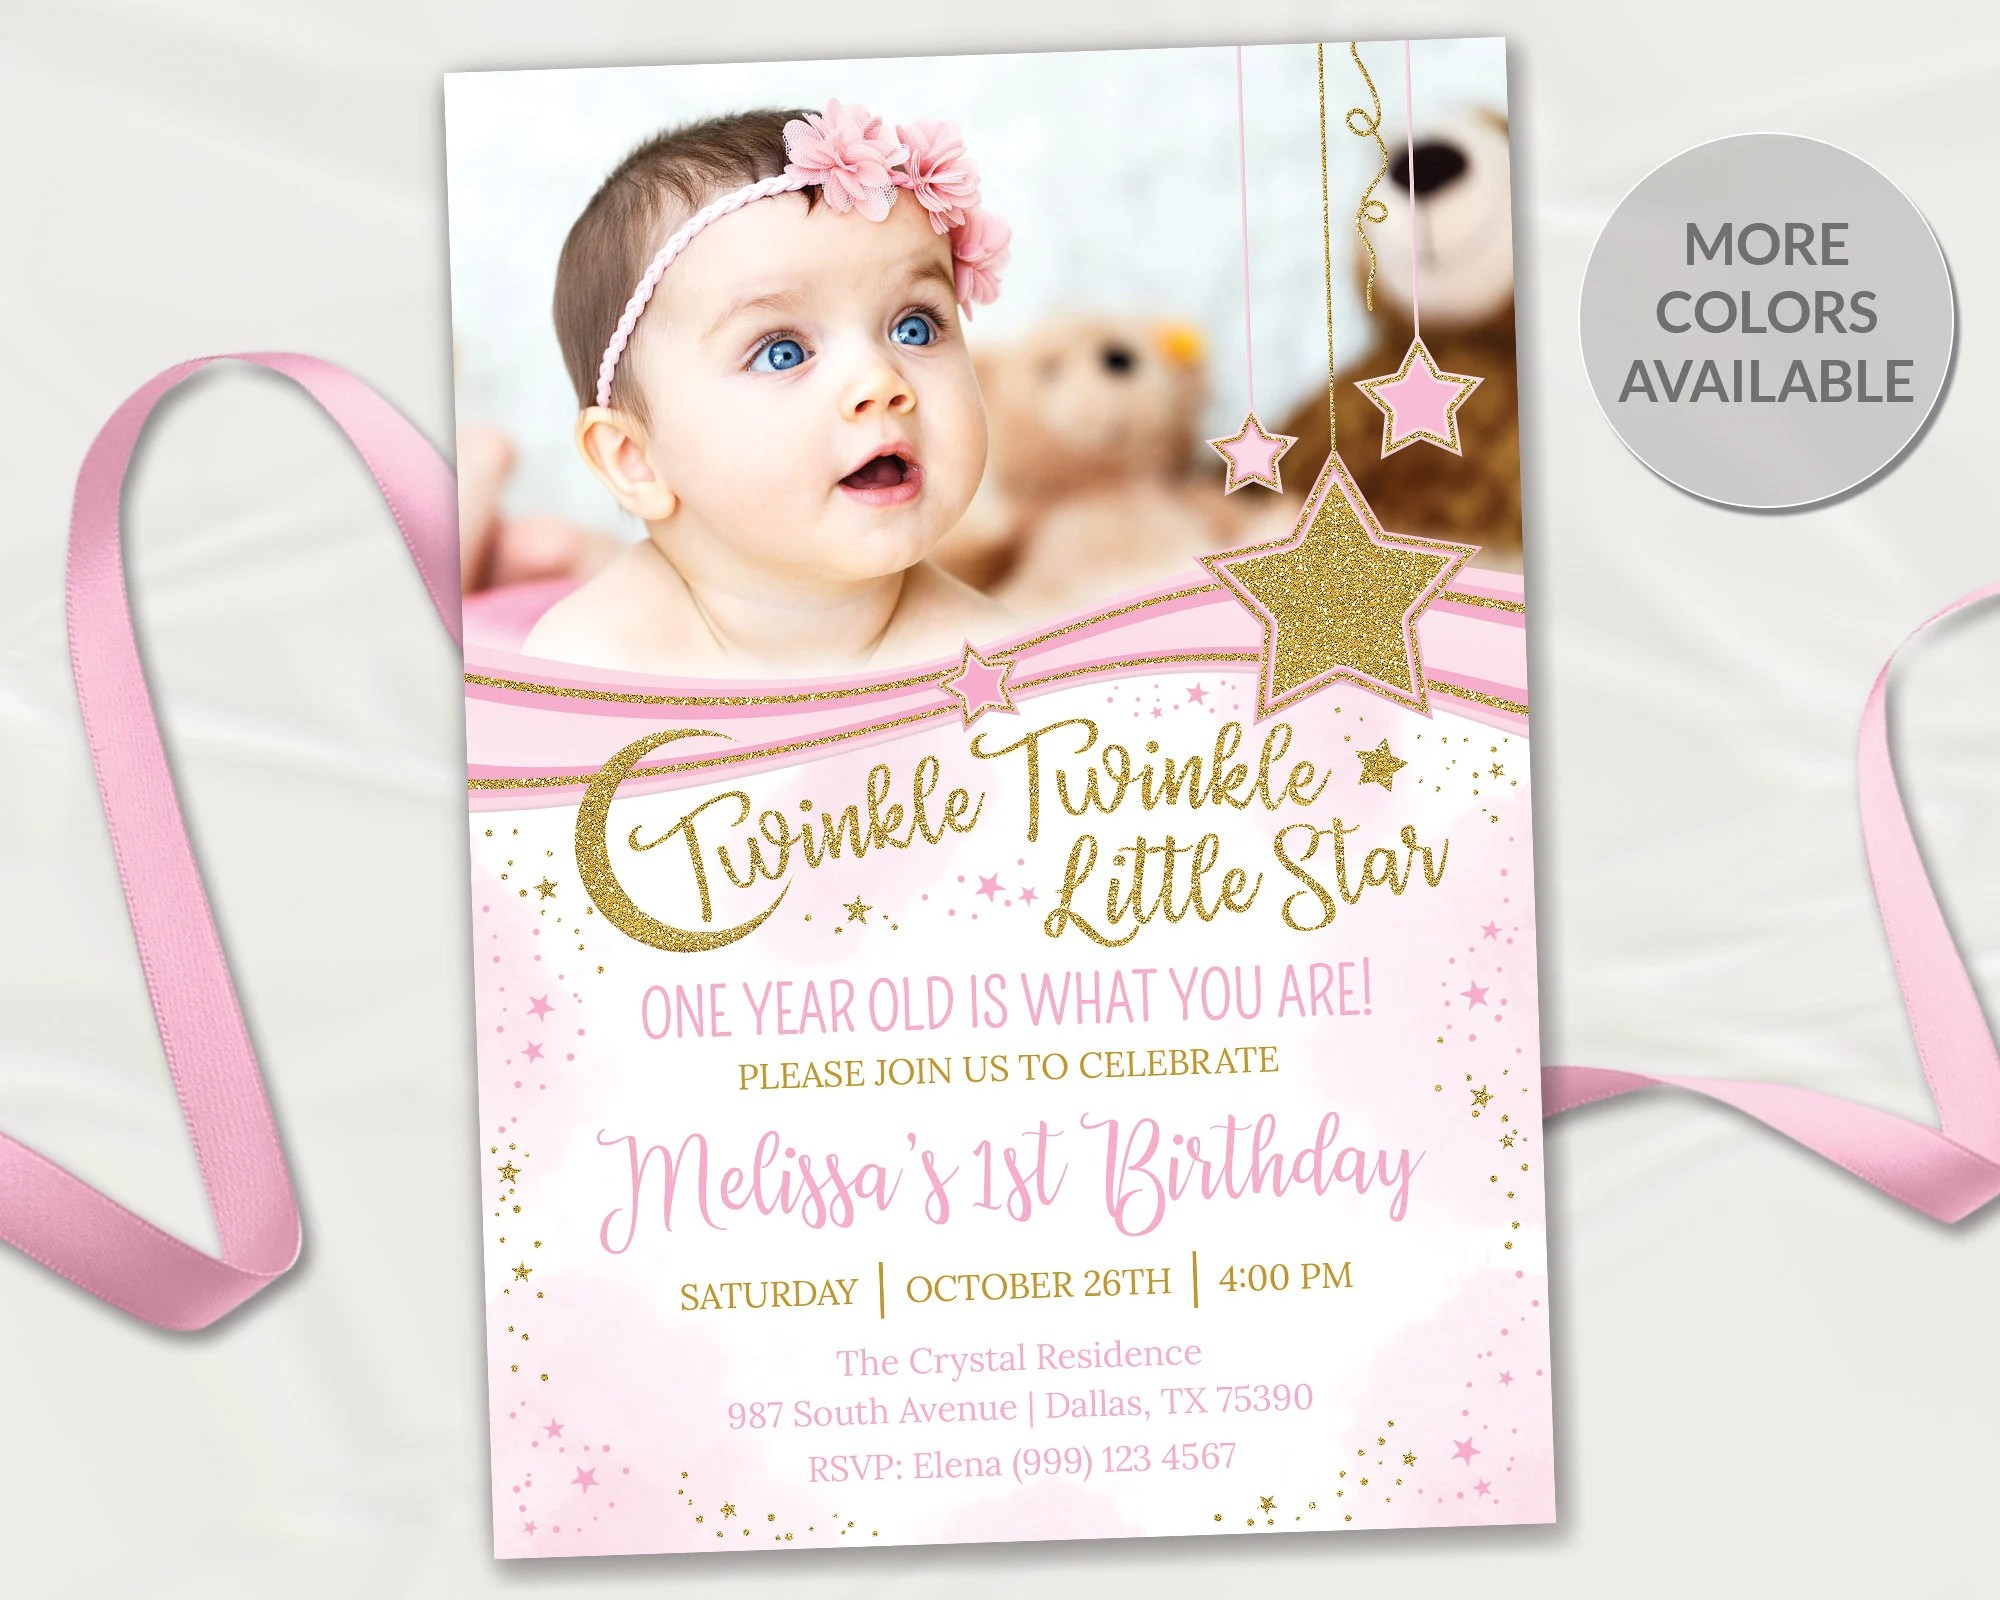 twinkle twinkle little star first birthday invitatiion girl 1st birthday invitation pink and gold invite pink and gold stars invitation